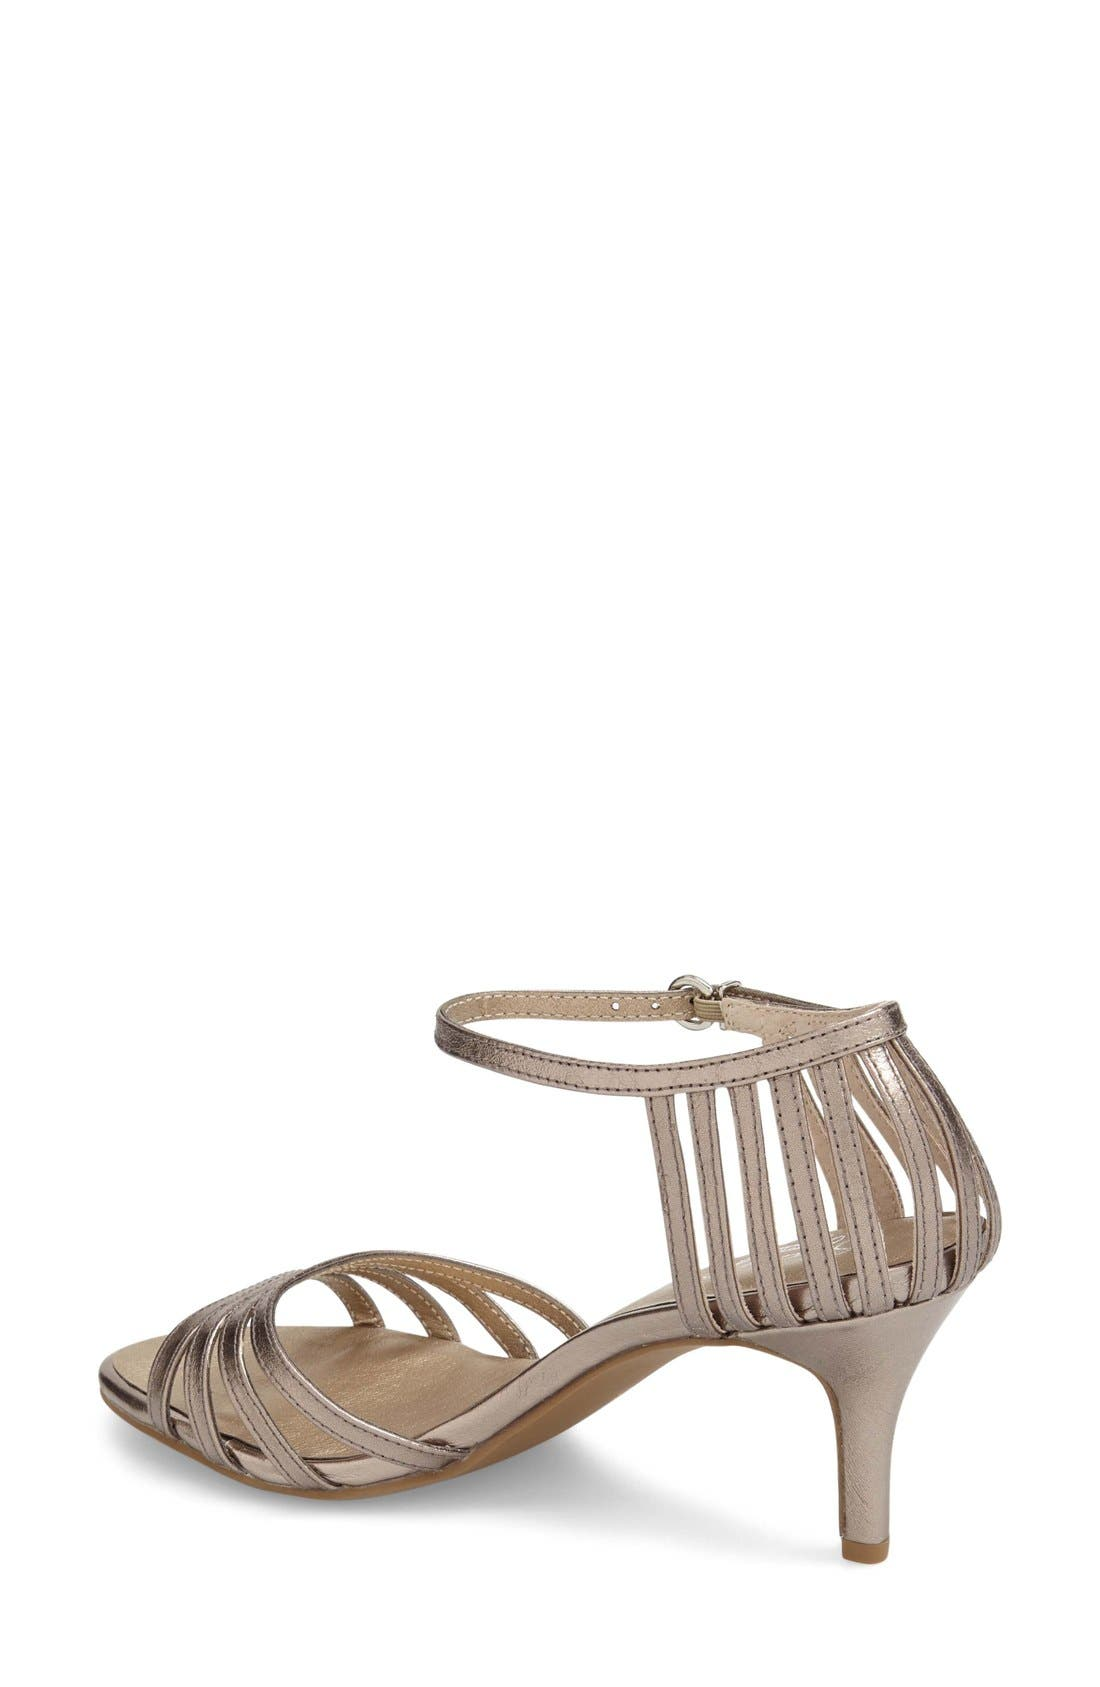 'Song and Dance' Ankle Strap Pump,                             Alternate thumbnail 2, color,                             Pewter Leather